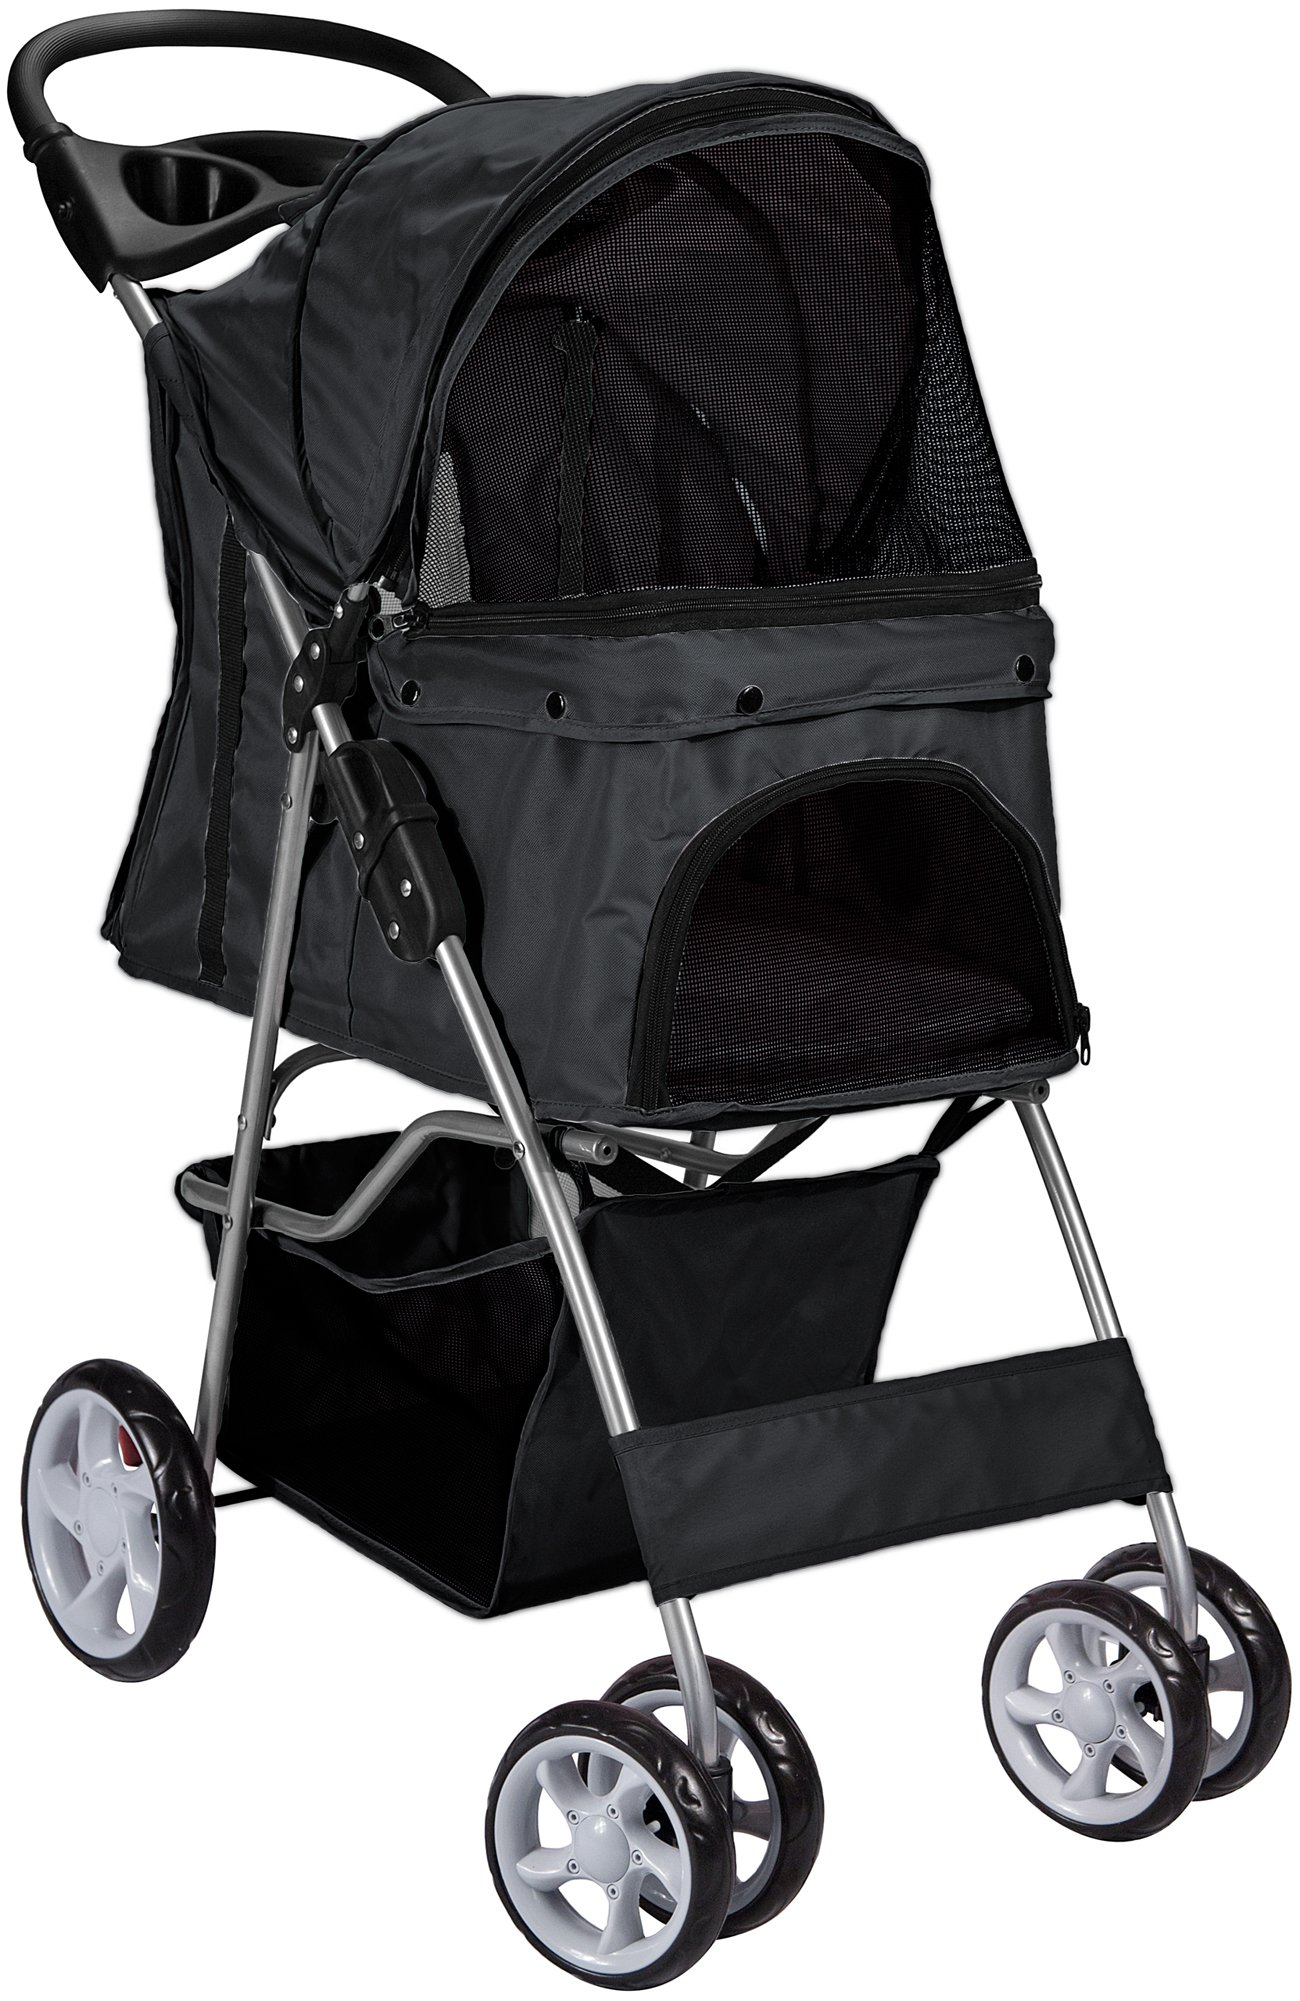 Paws & Pals Pet Stroller Cat/Dog Easy Walk Folding Travel Carrier Carriage, Onyx Black by Paws & Pals